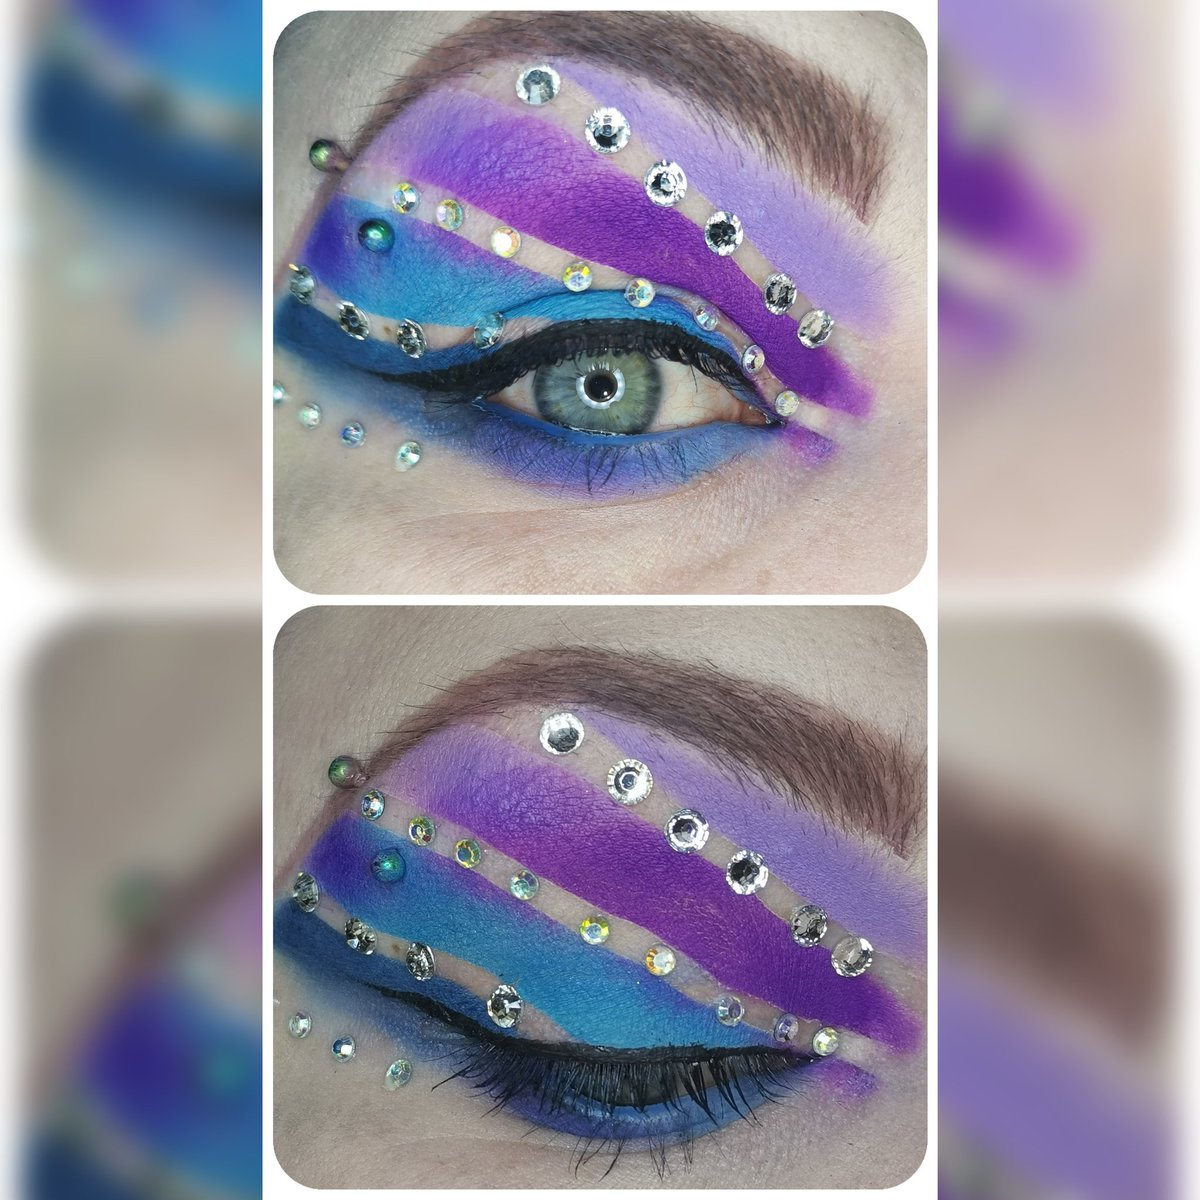 So I tryed something a little diffrent please tell me its not rubbish I'm loosing my passion for makeup atm feel like I'm not getting anywhere in life  #makeup #makeuplooks #purple #makemefamous #beautycommunity #beautifulpic.twitter.com/i2OLi8PY3d  by Carissa ♡ Mckinley